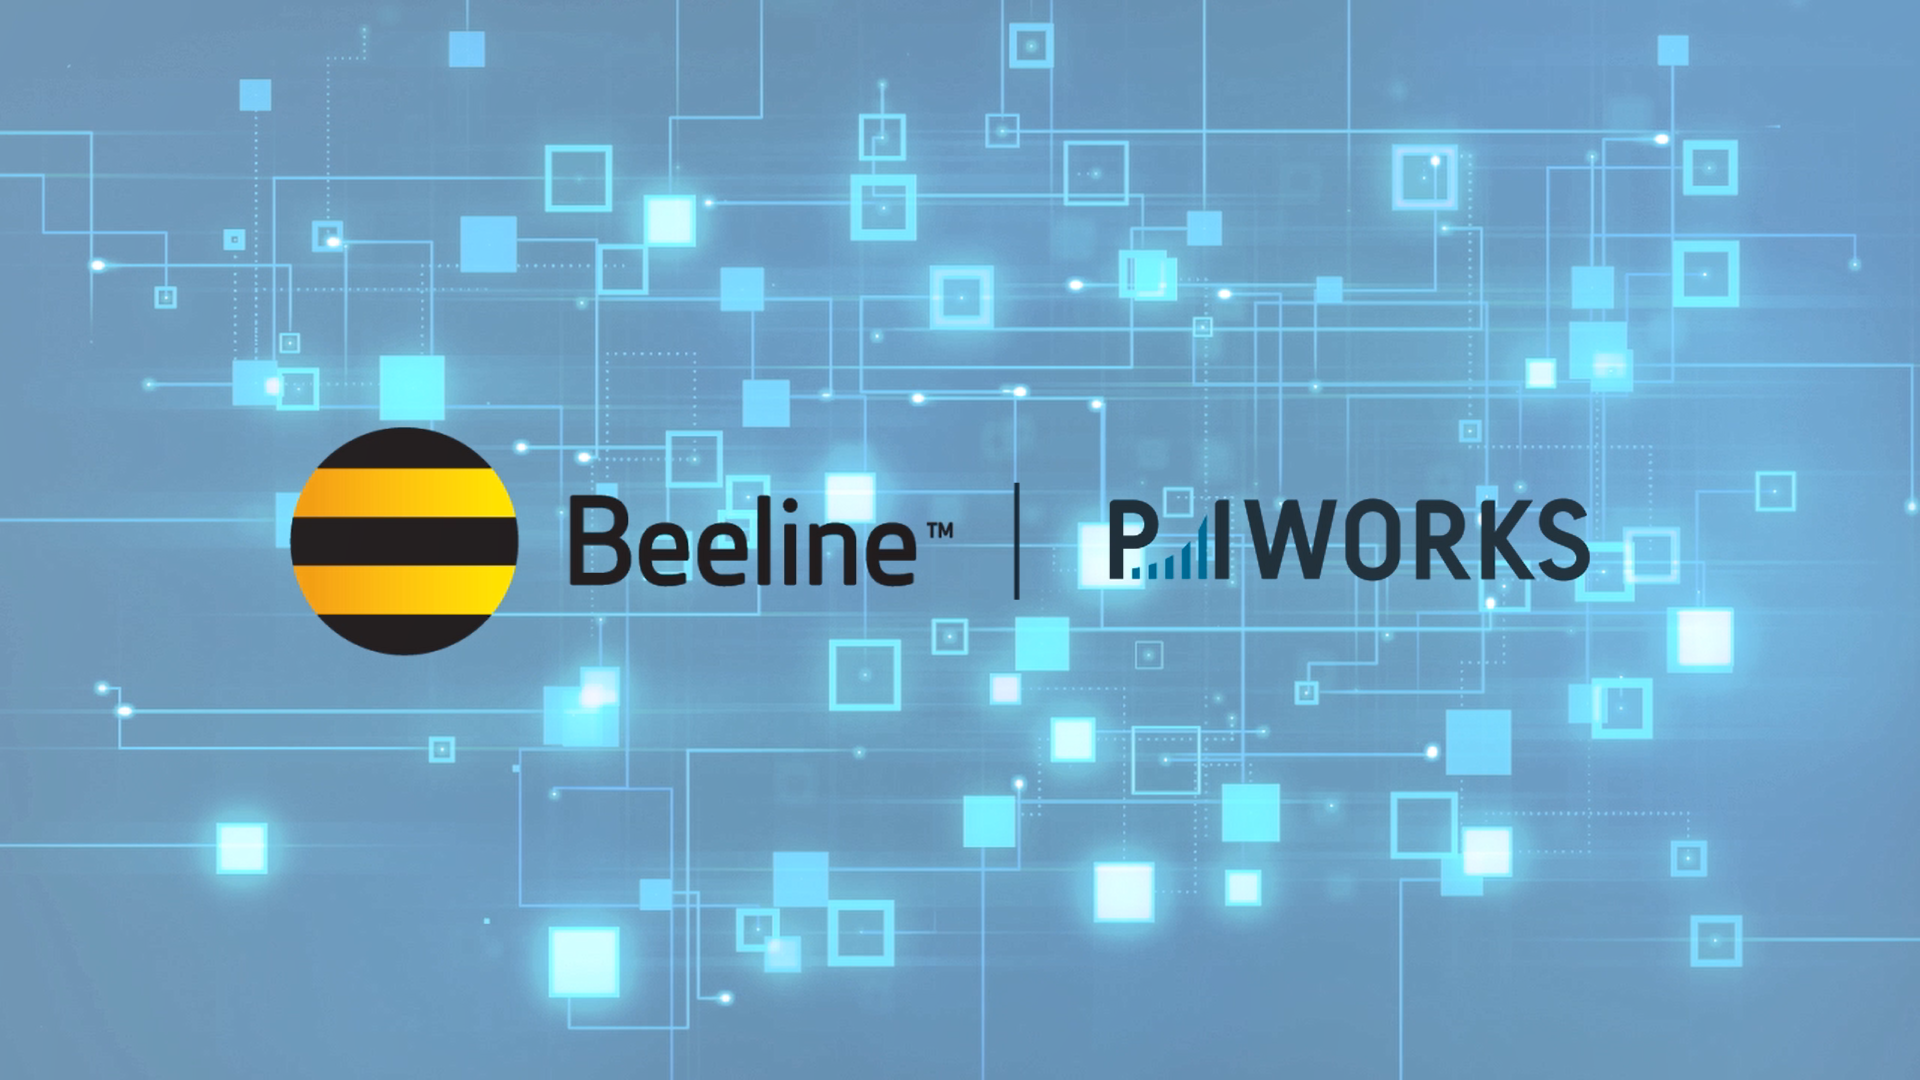 P.I. Works and Beeline Russia Partner to Transform Mobile Experience of Millions